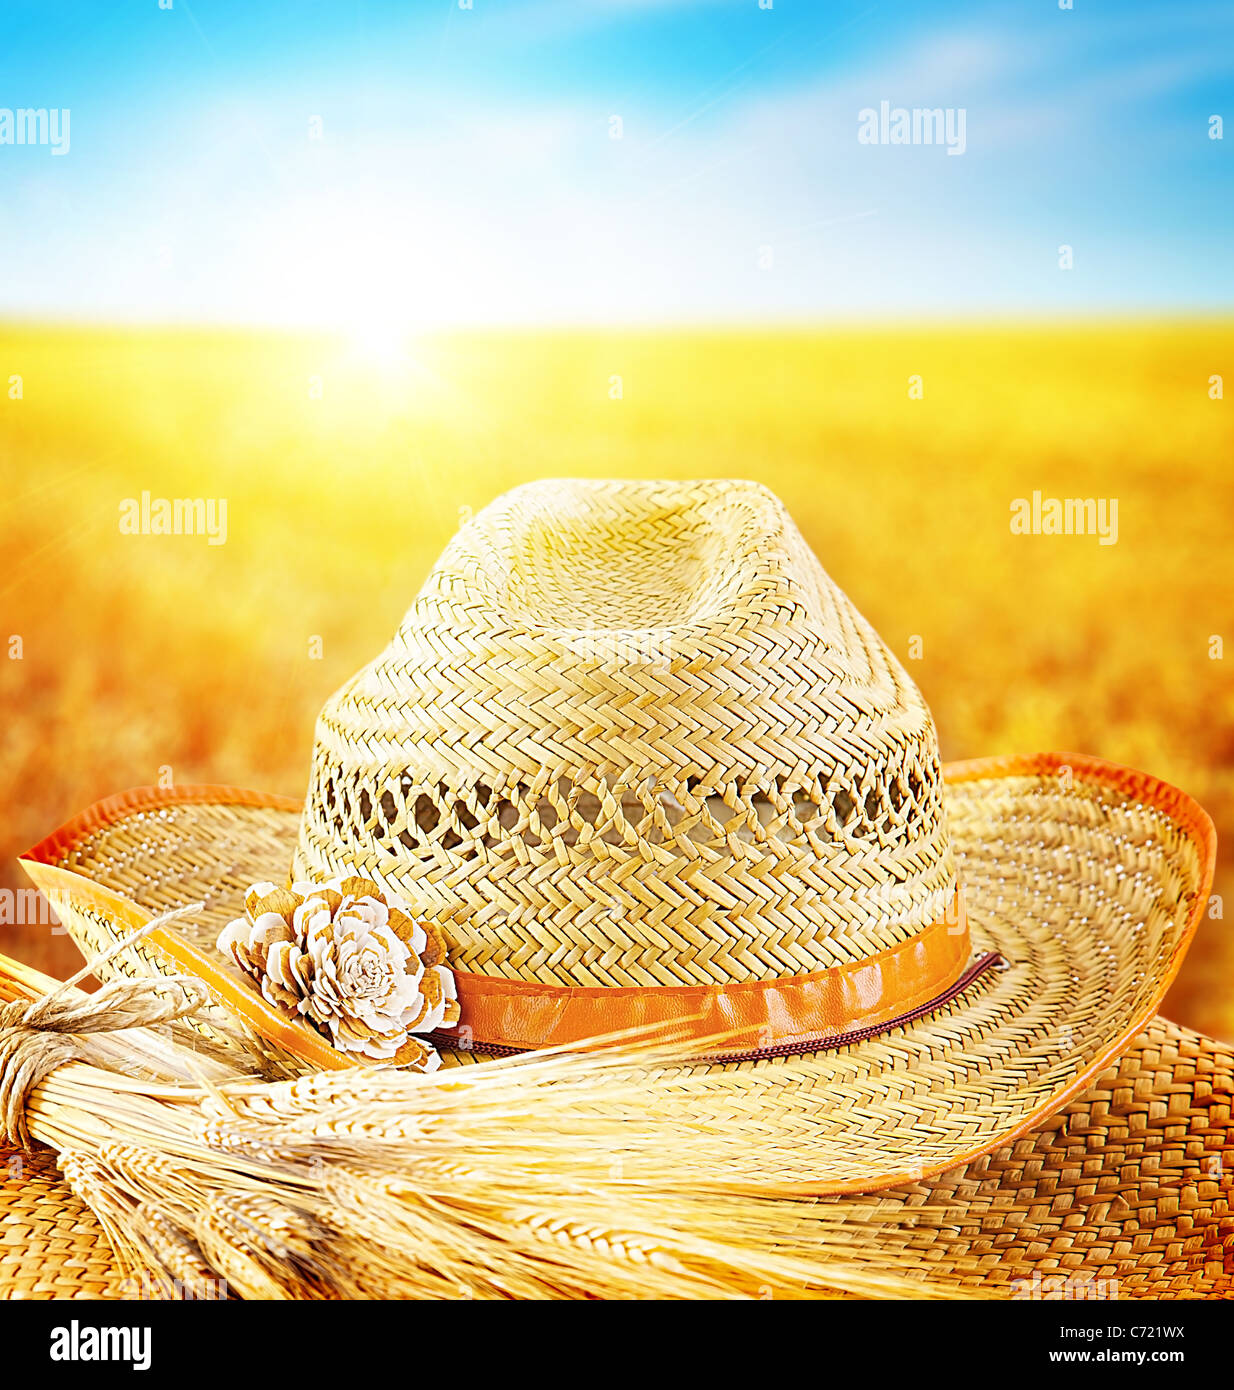 Wheat field and the hat of a farmer, agricultural business industry, autumn seasonal harvest concept - Stock Image